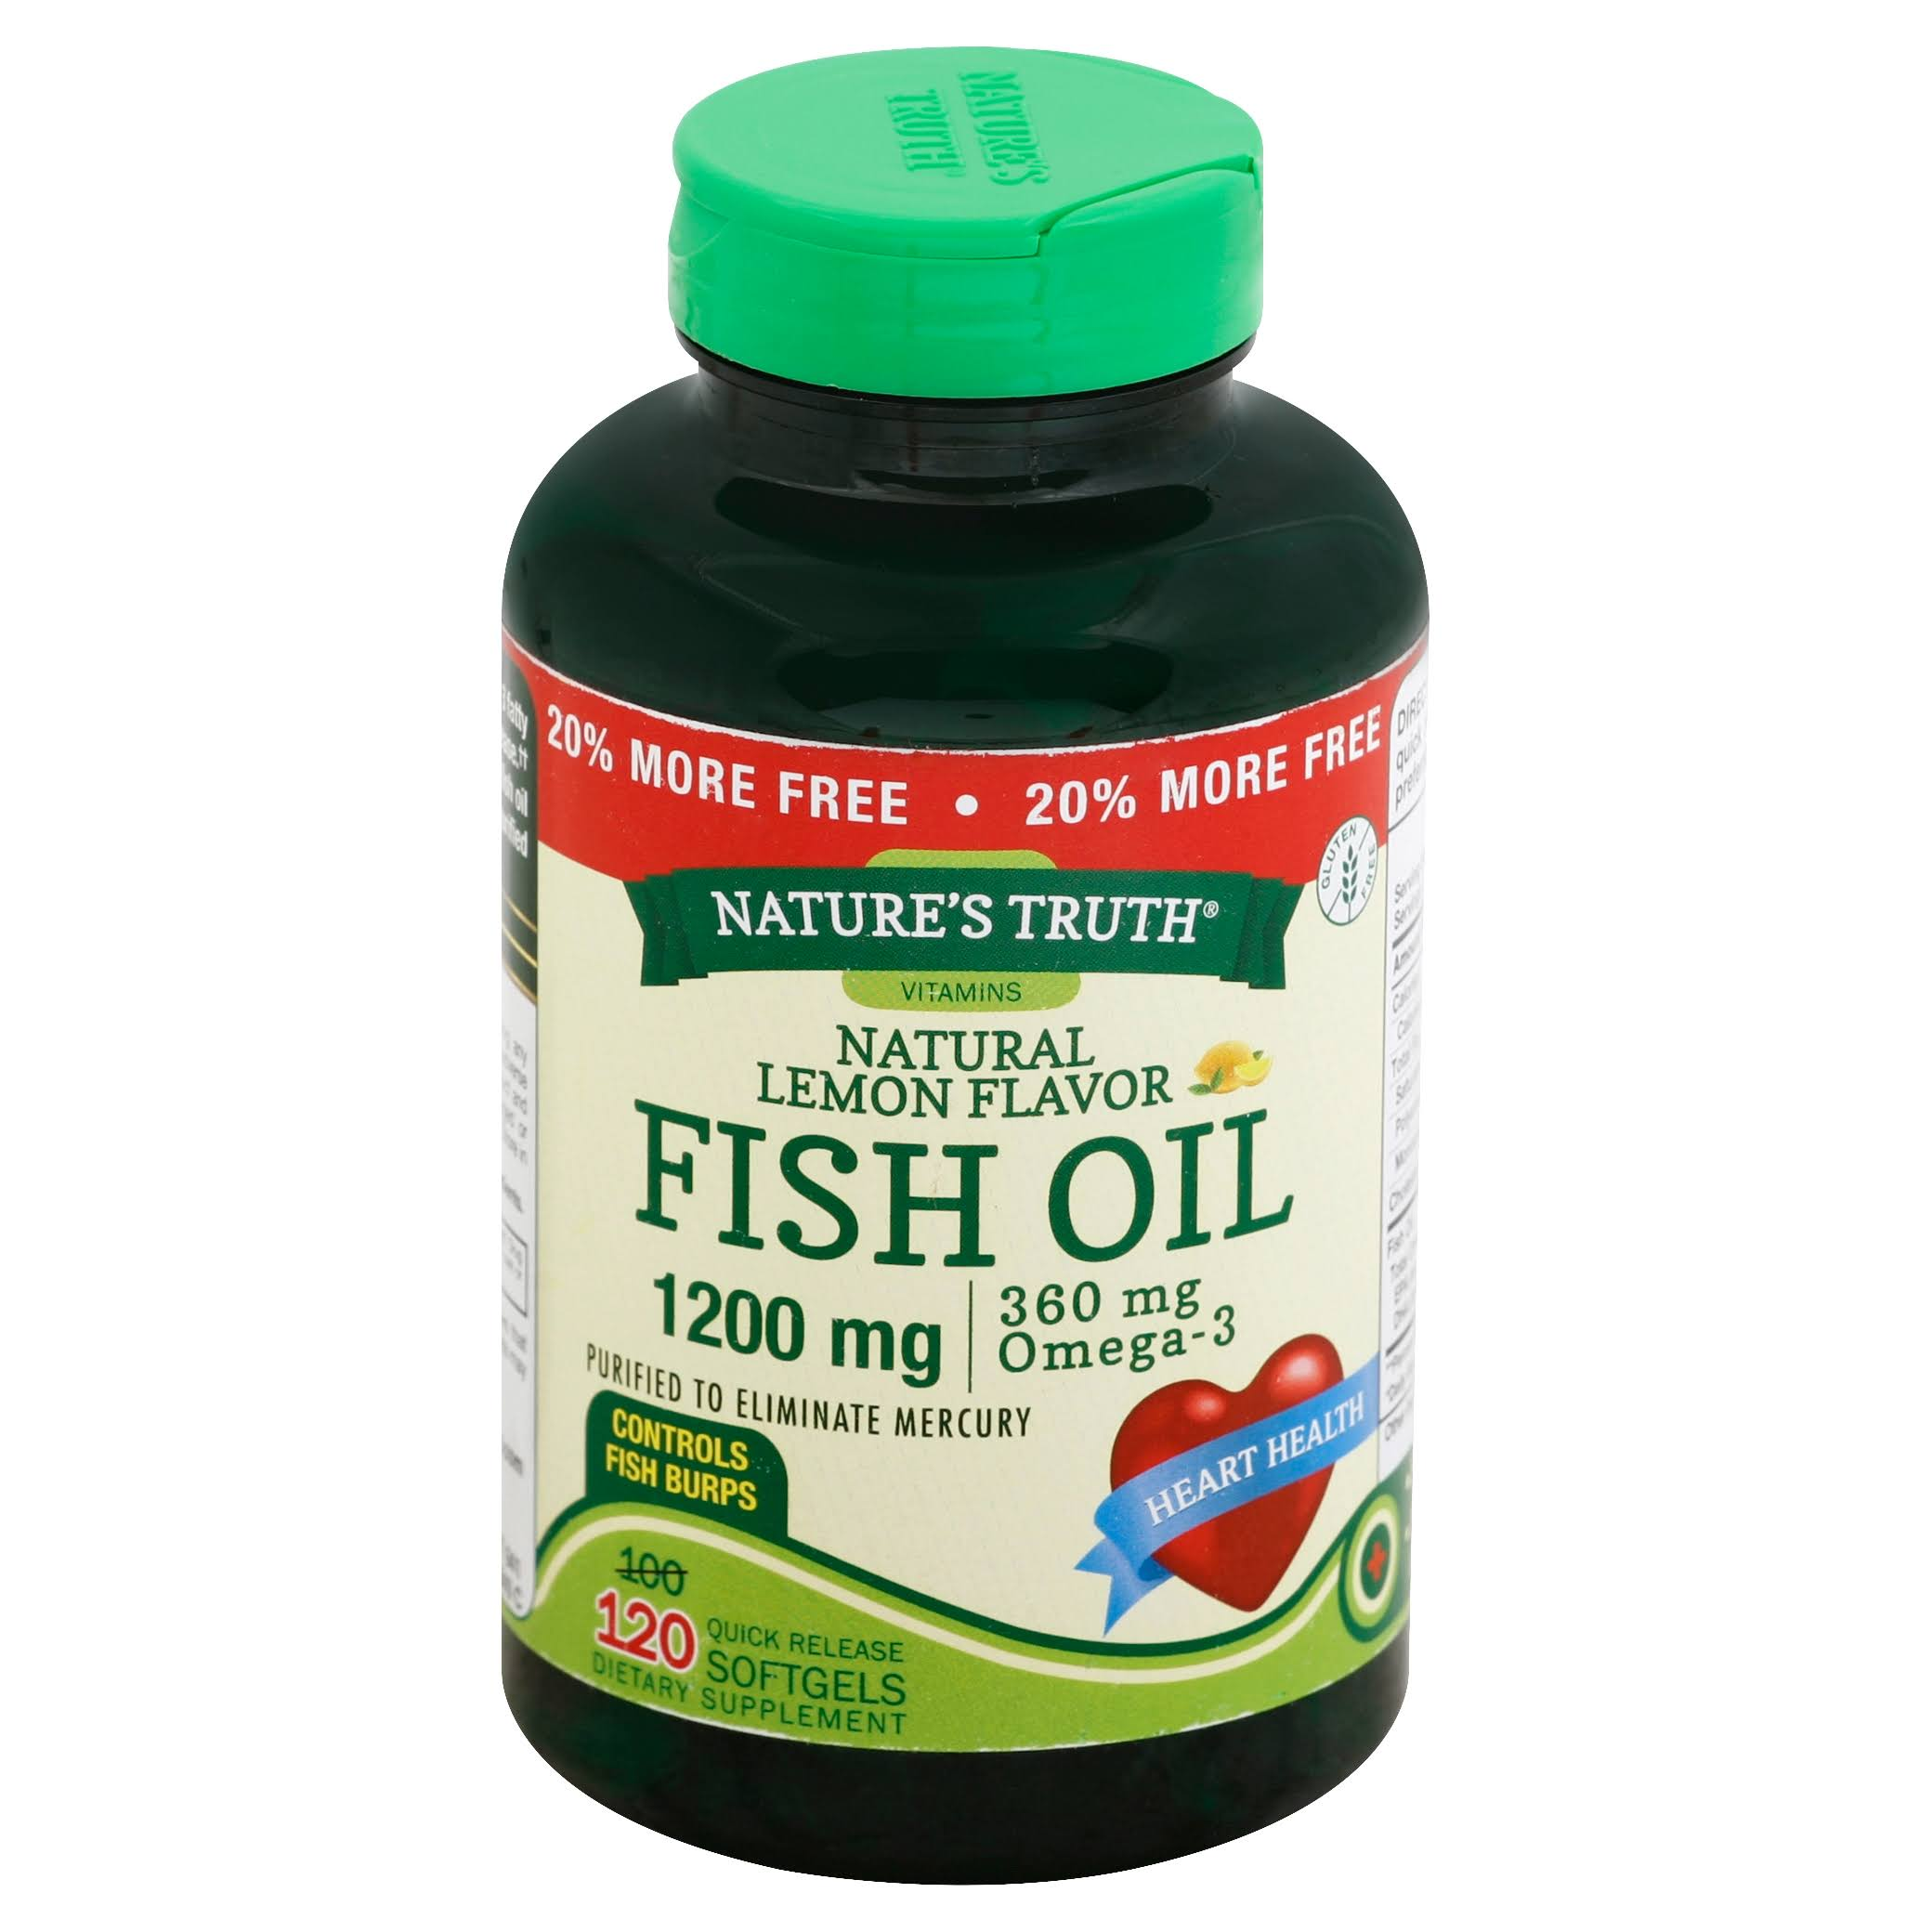 Nature's Truth Fish Oil Omega-3 Supplement - Natural Lemon Flavor, 120 Softgels